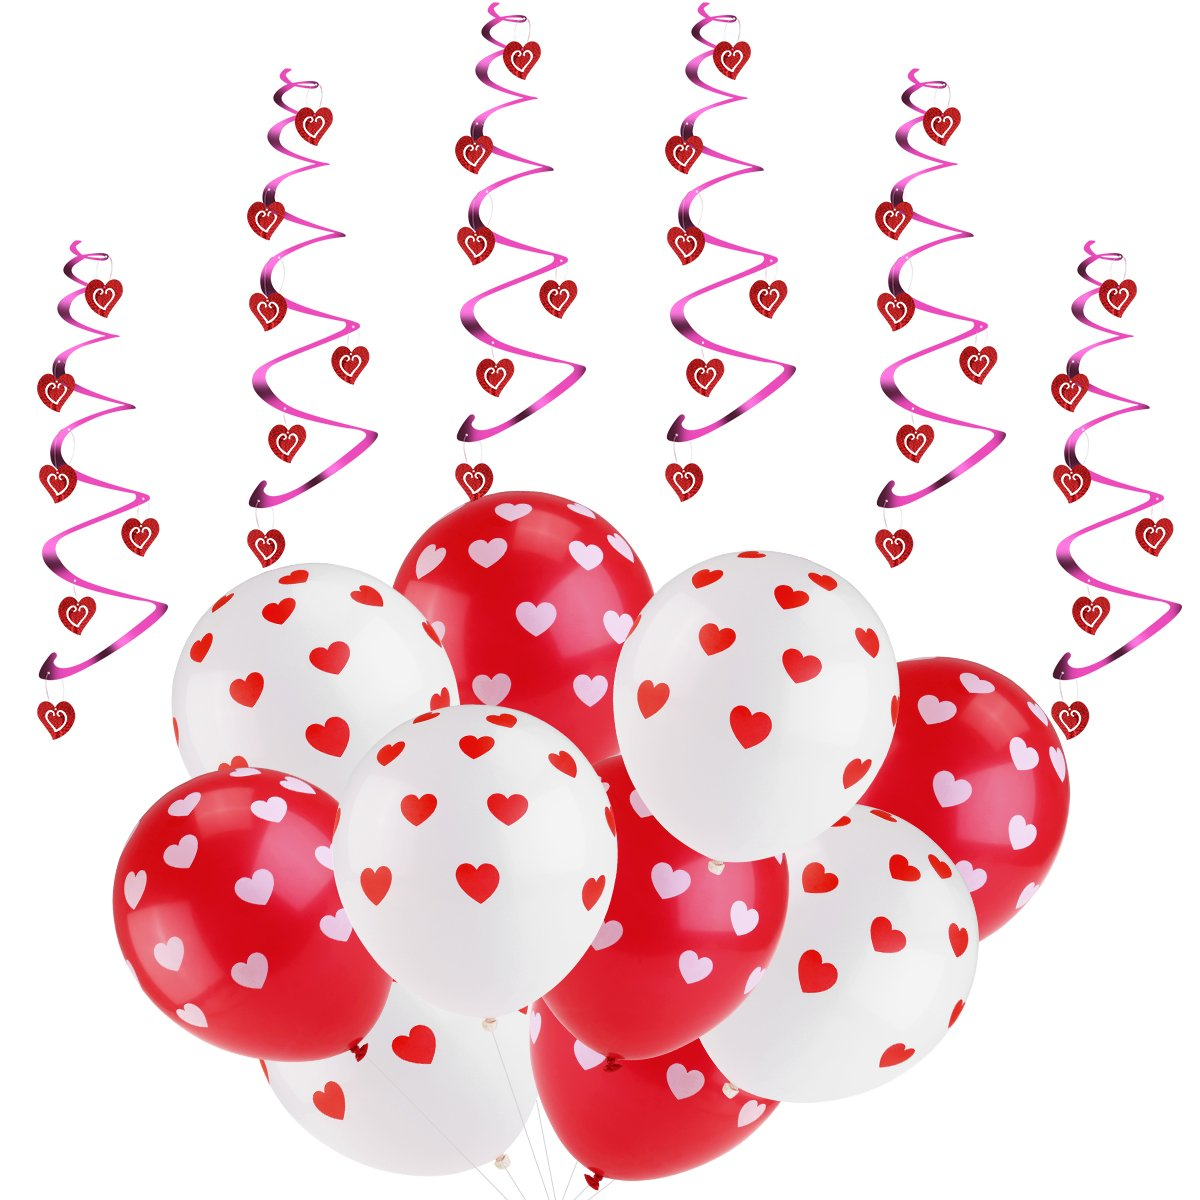 ROSENICE Valentines Heart Balloons for Valentines Day Decorations Supplies, 6pcs Hanging Hearts and